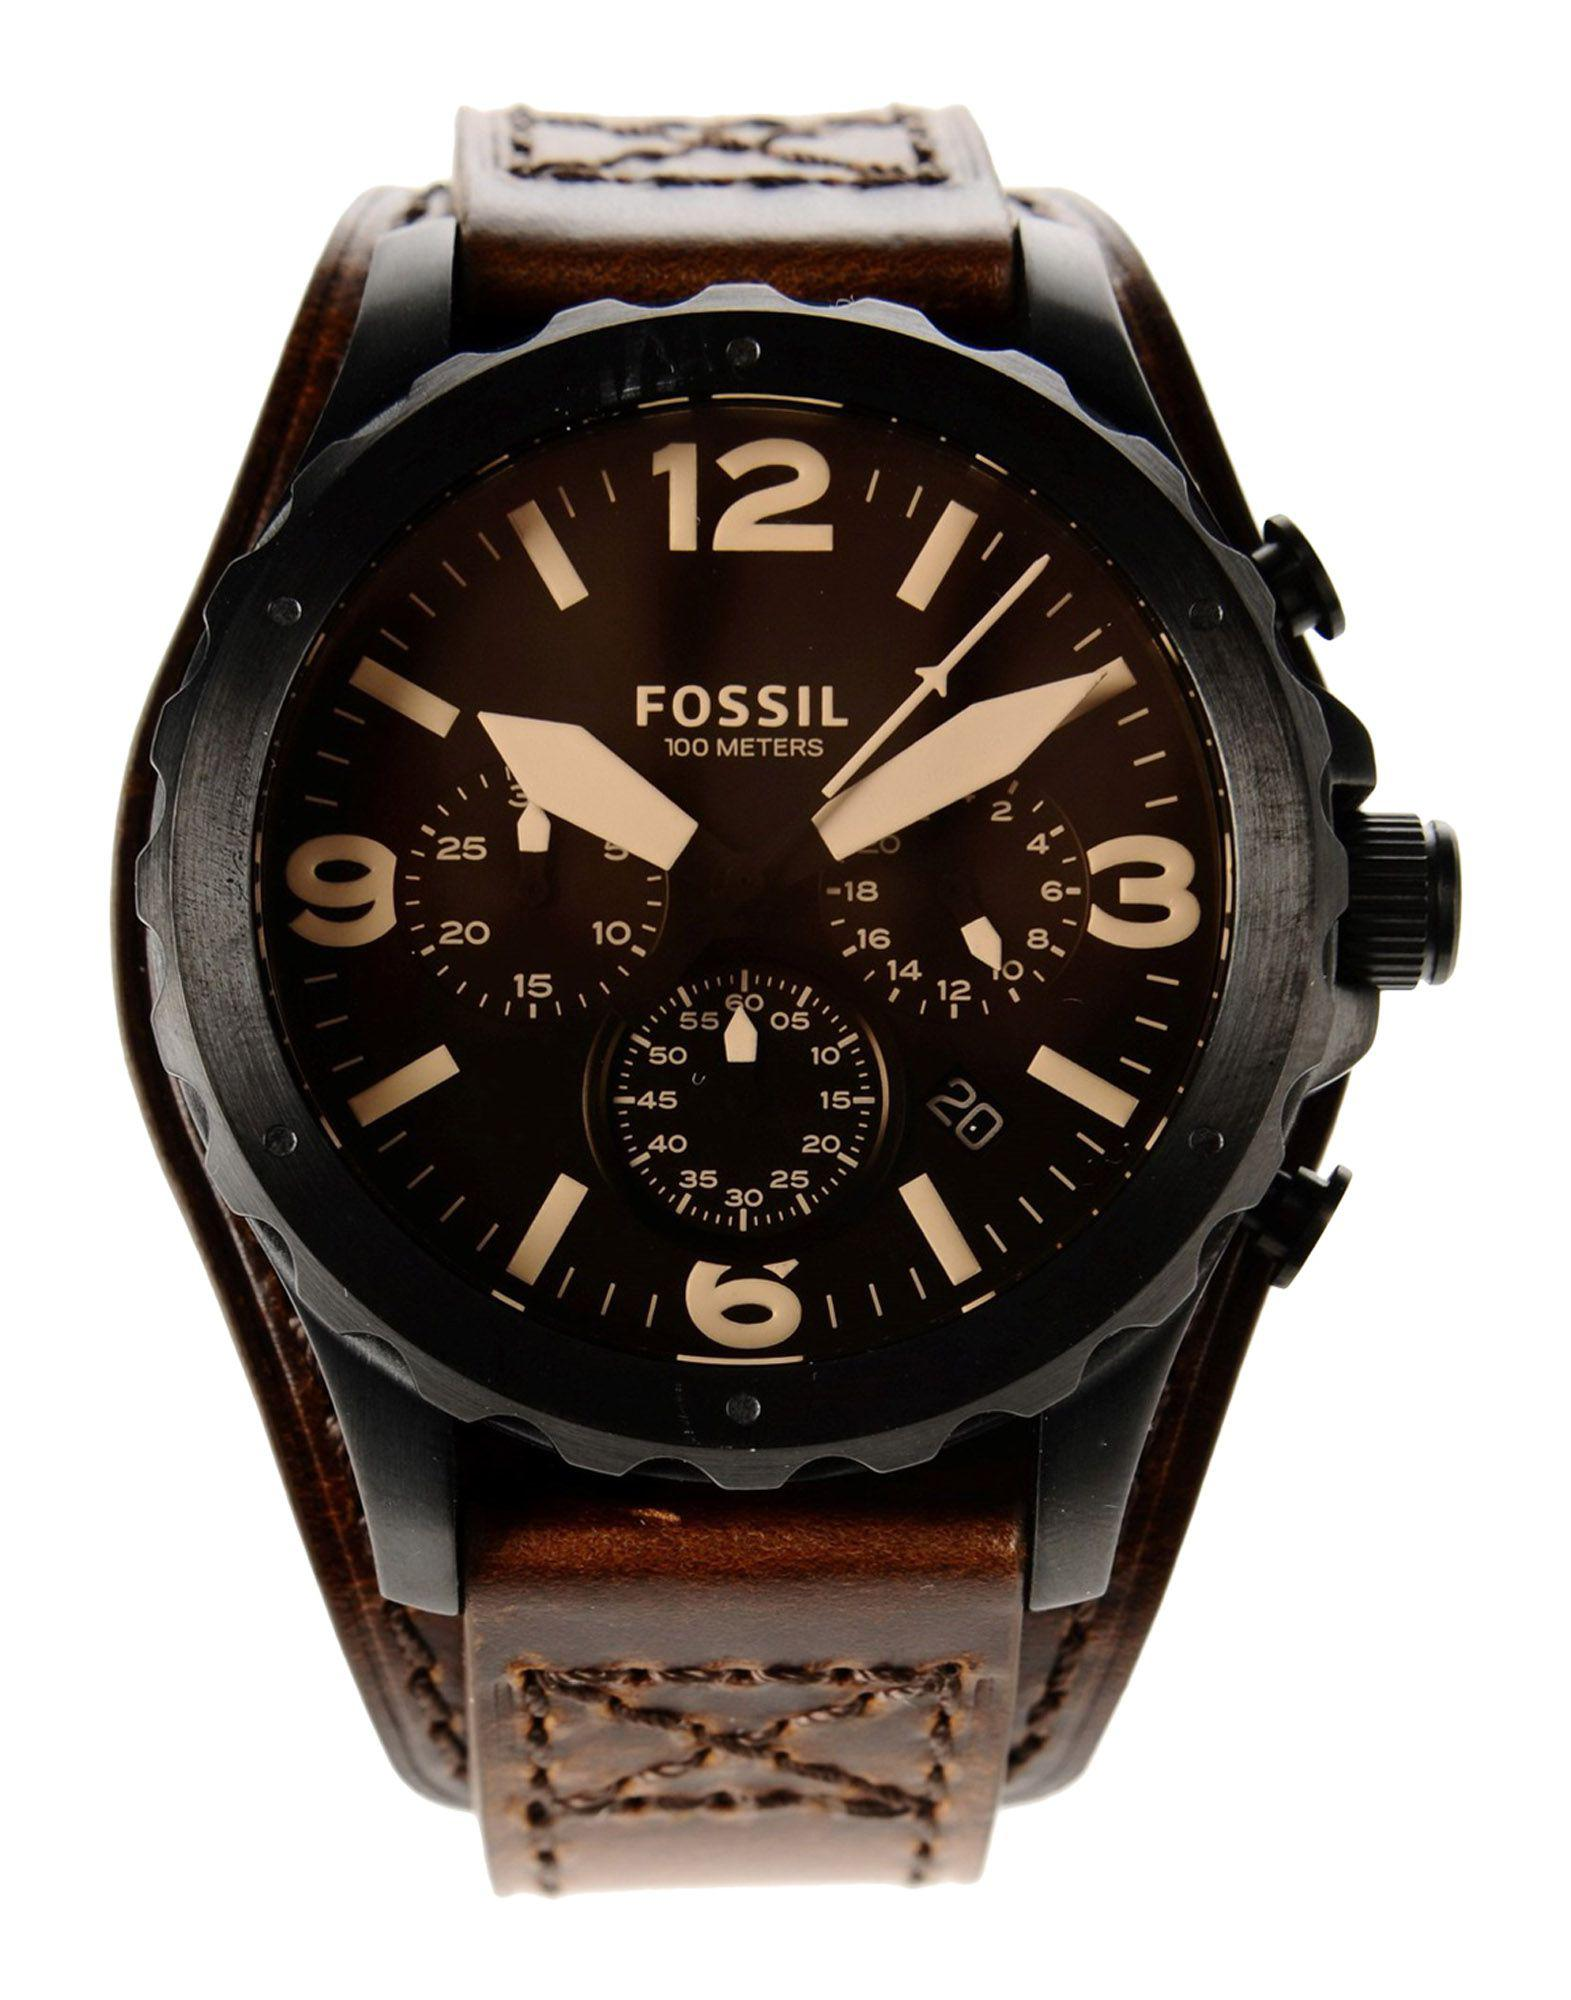 Fossil Leather Wrist Watch in Brown for Men - Lyst